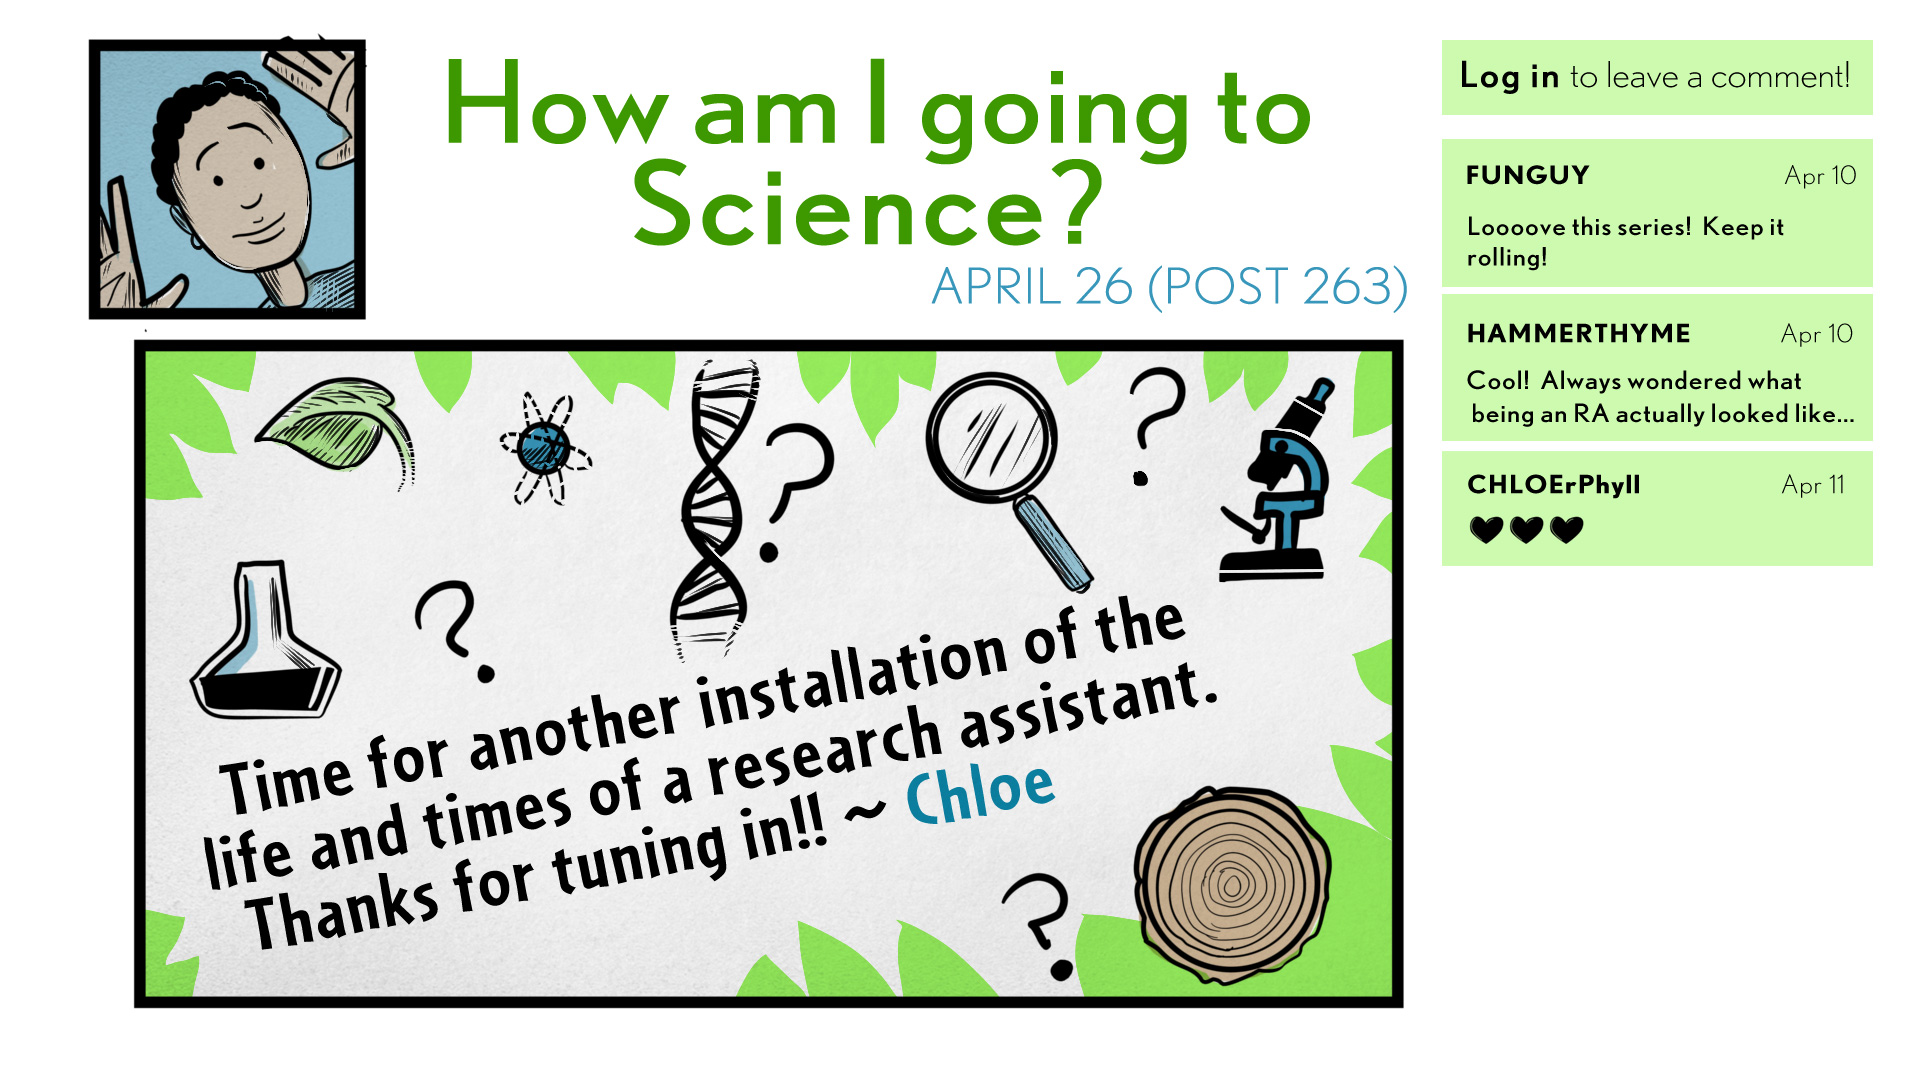 "April 26, Post 263. The blog is called ""How am I going to Science?"" Several science-related icons are showing on the screen, including a leaf, a beaker, a double helix, a magnifying glass, a microscope, and a tree cookie. Chloe, the author, says, ""Time for another installation of the life and times of a research assistant. Thanks for tuning in!"" On the side are several comments on the blog. Funguy says, ""Looove this series! Keep it rolling!"" Hammerthyme says, ""Cool! Always wondered what being an RA actually"